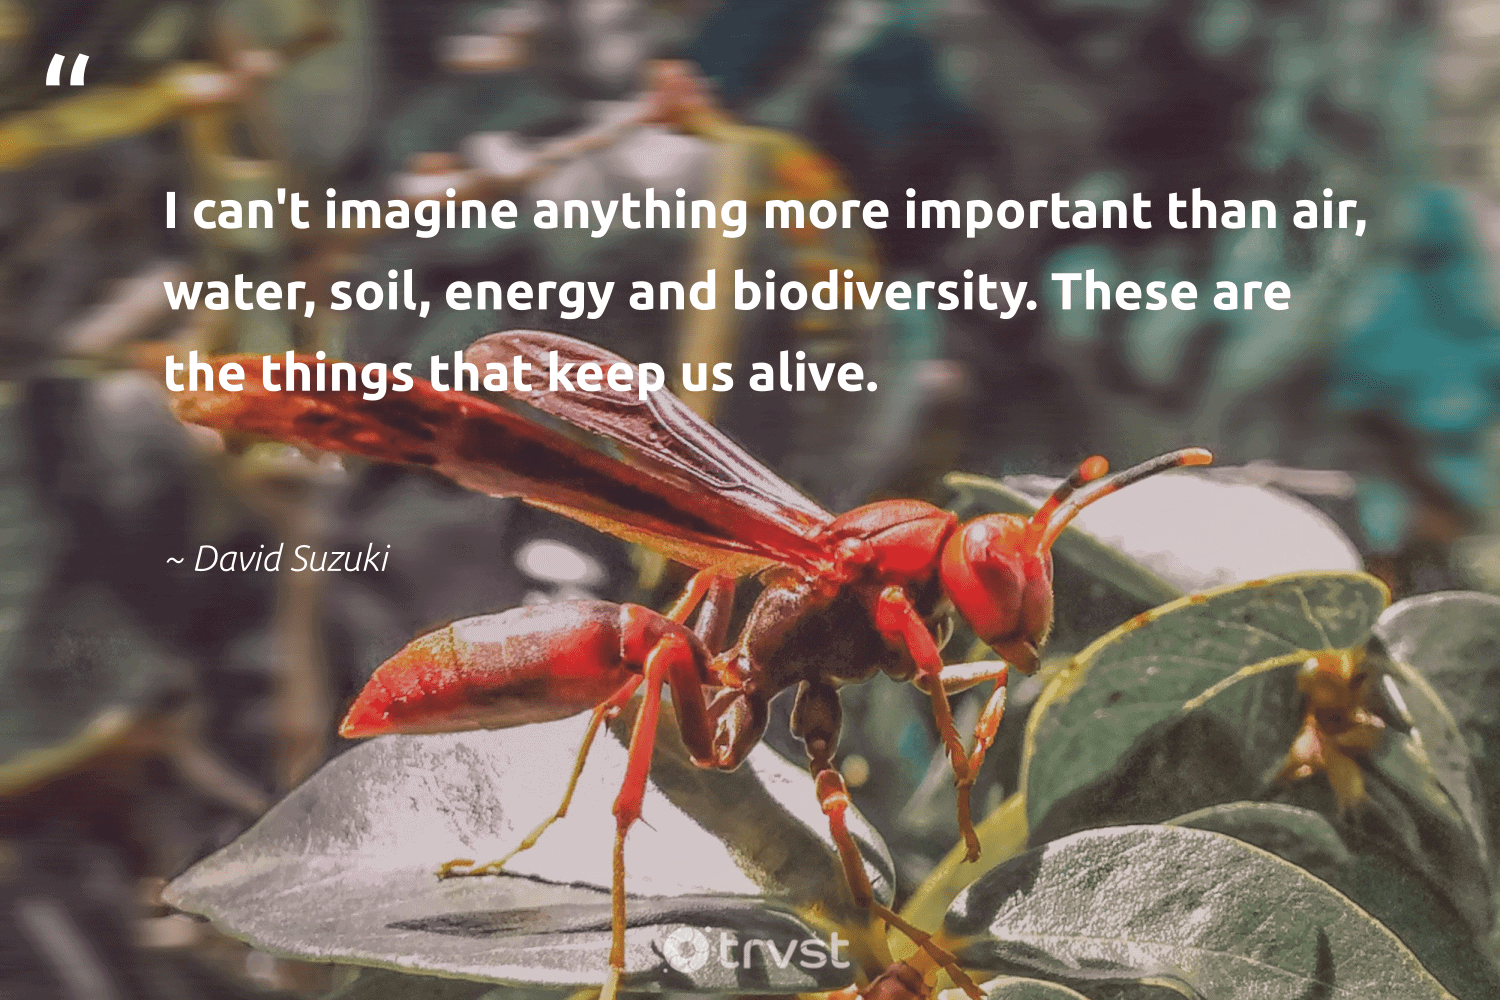 """""""I can't imagine anything more important than air, water, soil, energy and biodiversity. These are the things that keep us alive.""""  - David Suzuki #trvst #quotes #energy #water #biodiversity #oceanpollution #spider #earth #ecoconscious #ocean #flowers #wildernessnation"""